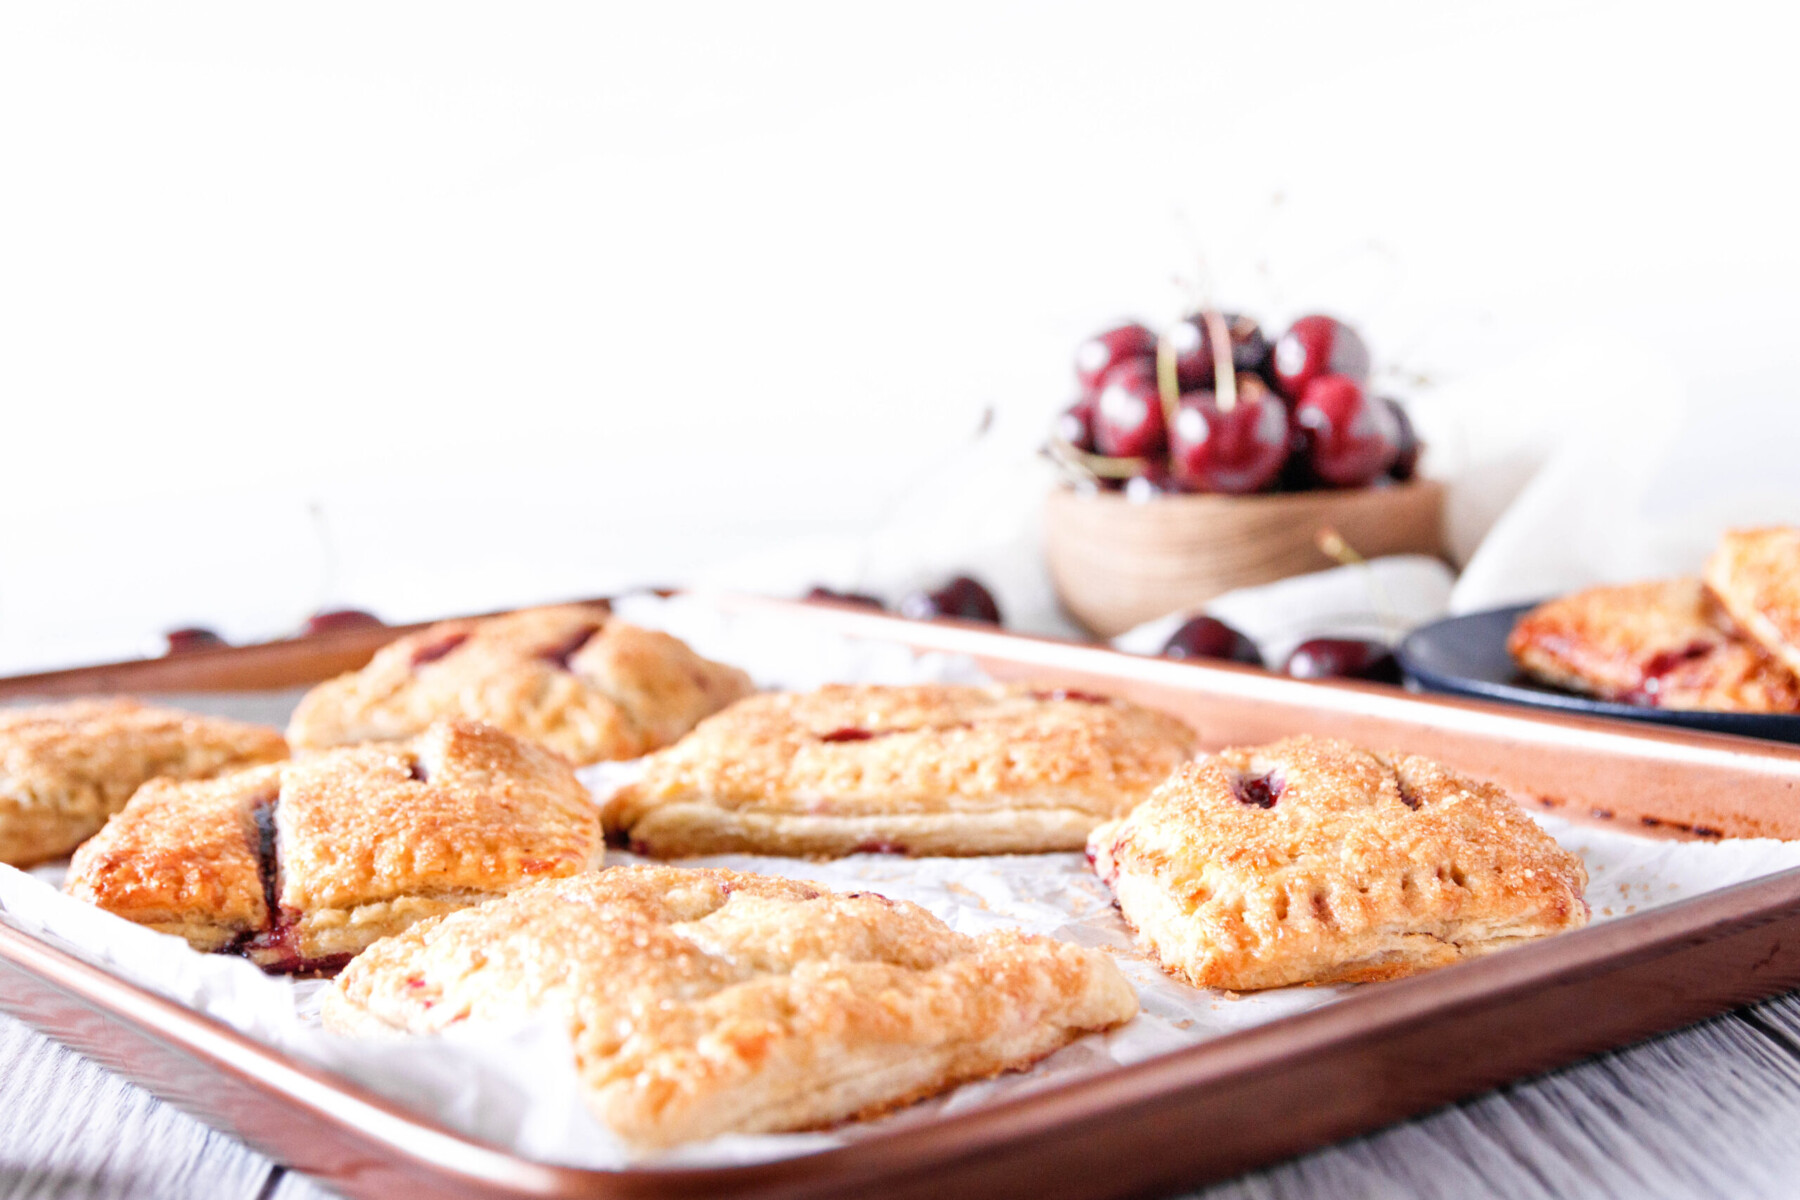 classic cherry hand pies fresh out of the oven resting on a baking sheet